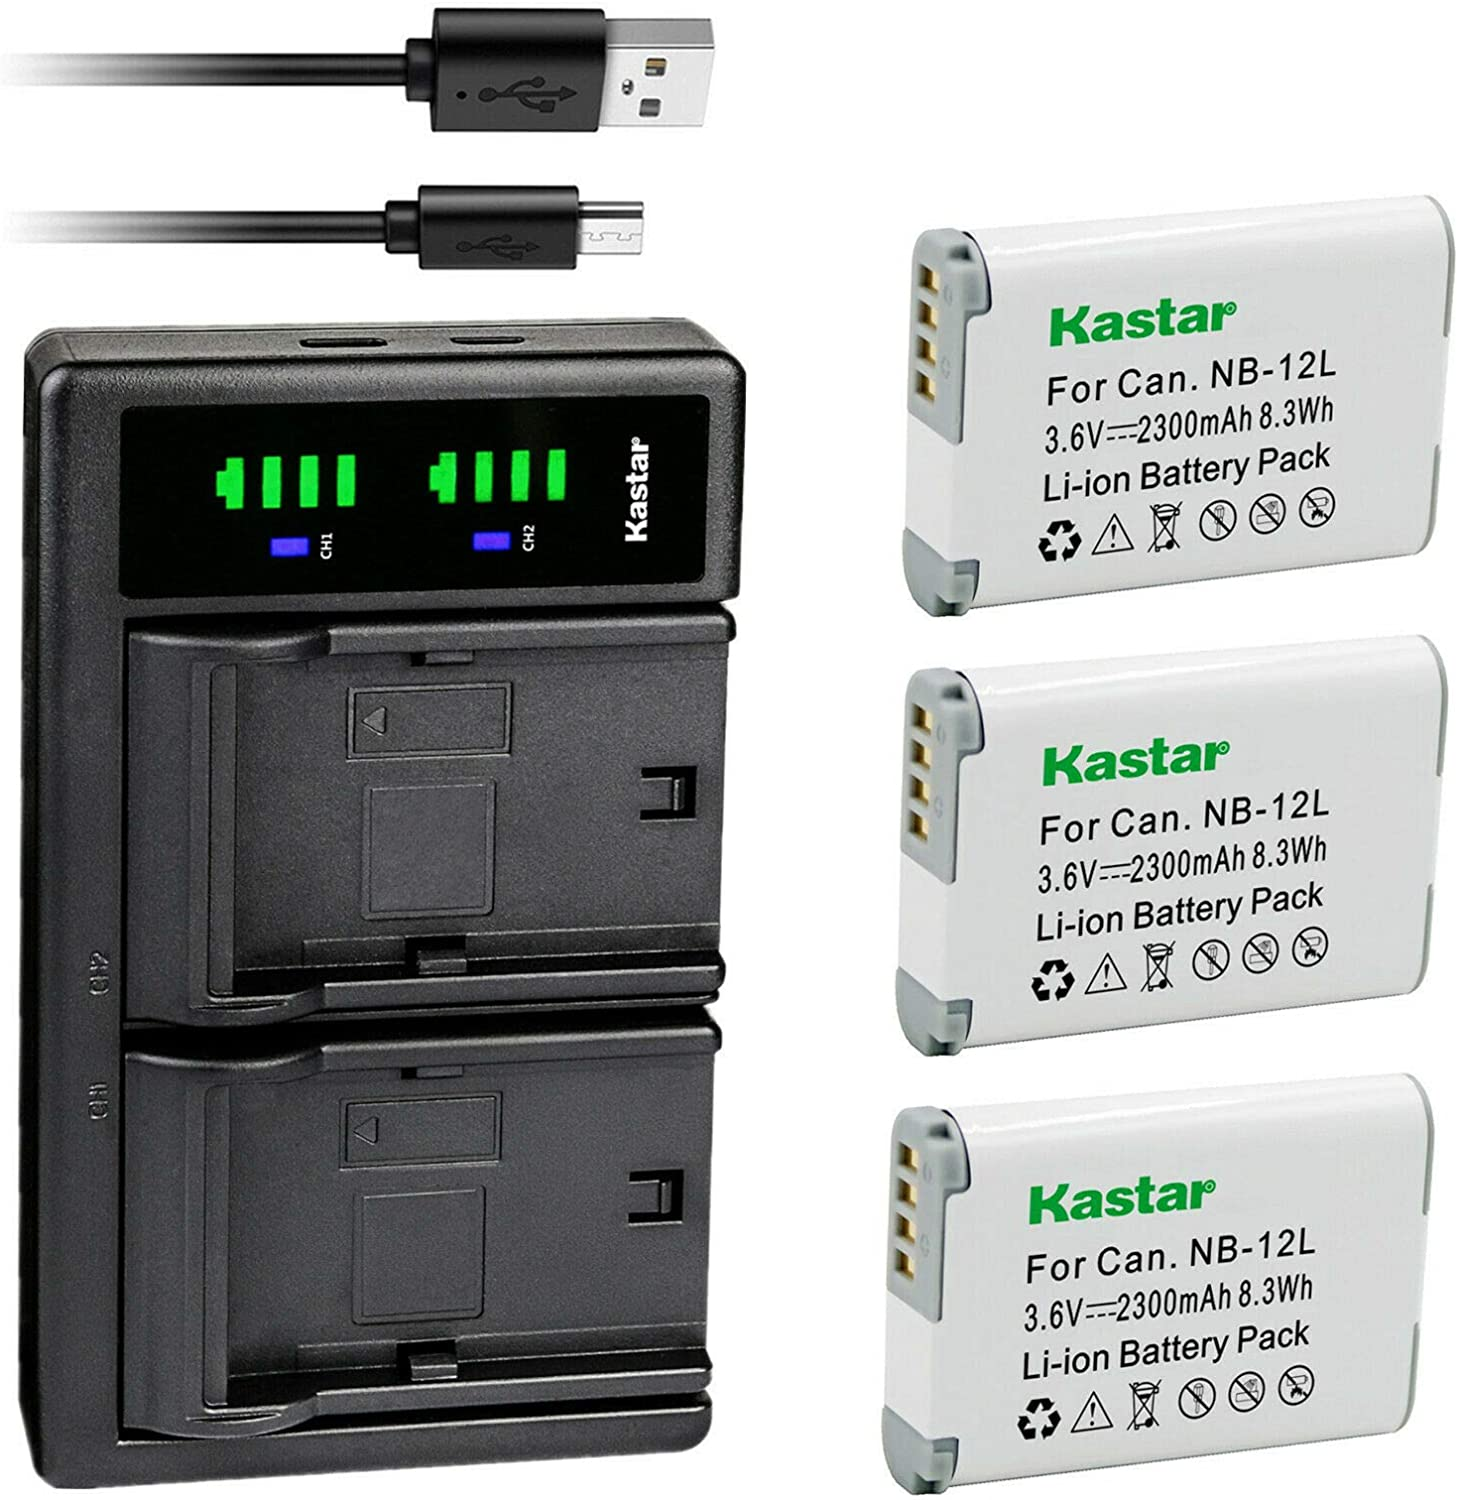 Kastar 3-Pack Battery and LTD2 Canon USB Charger for Ranking TOP16 gift Replacement